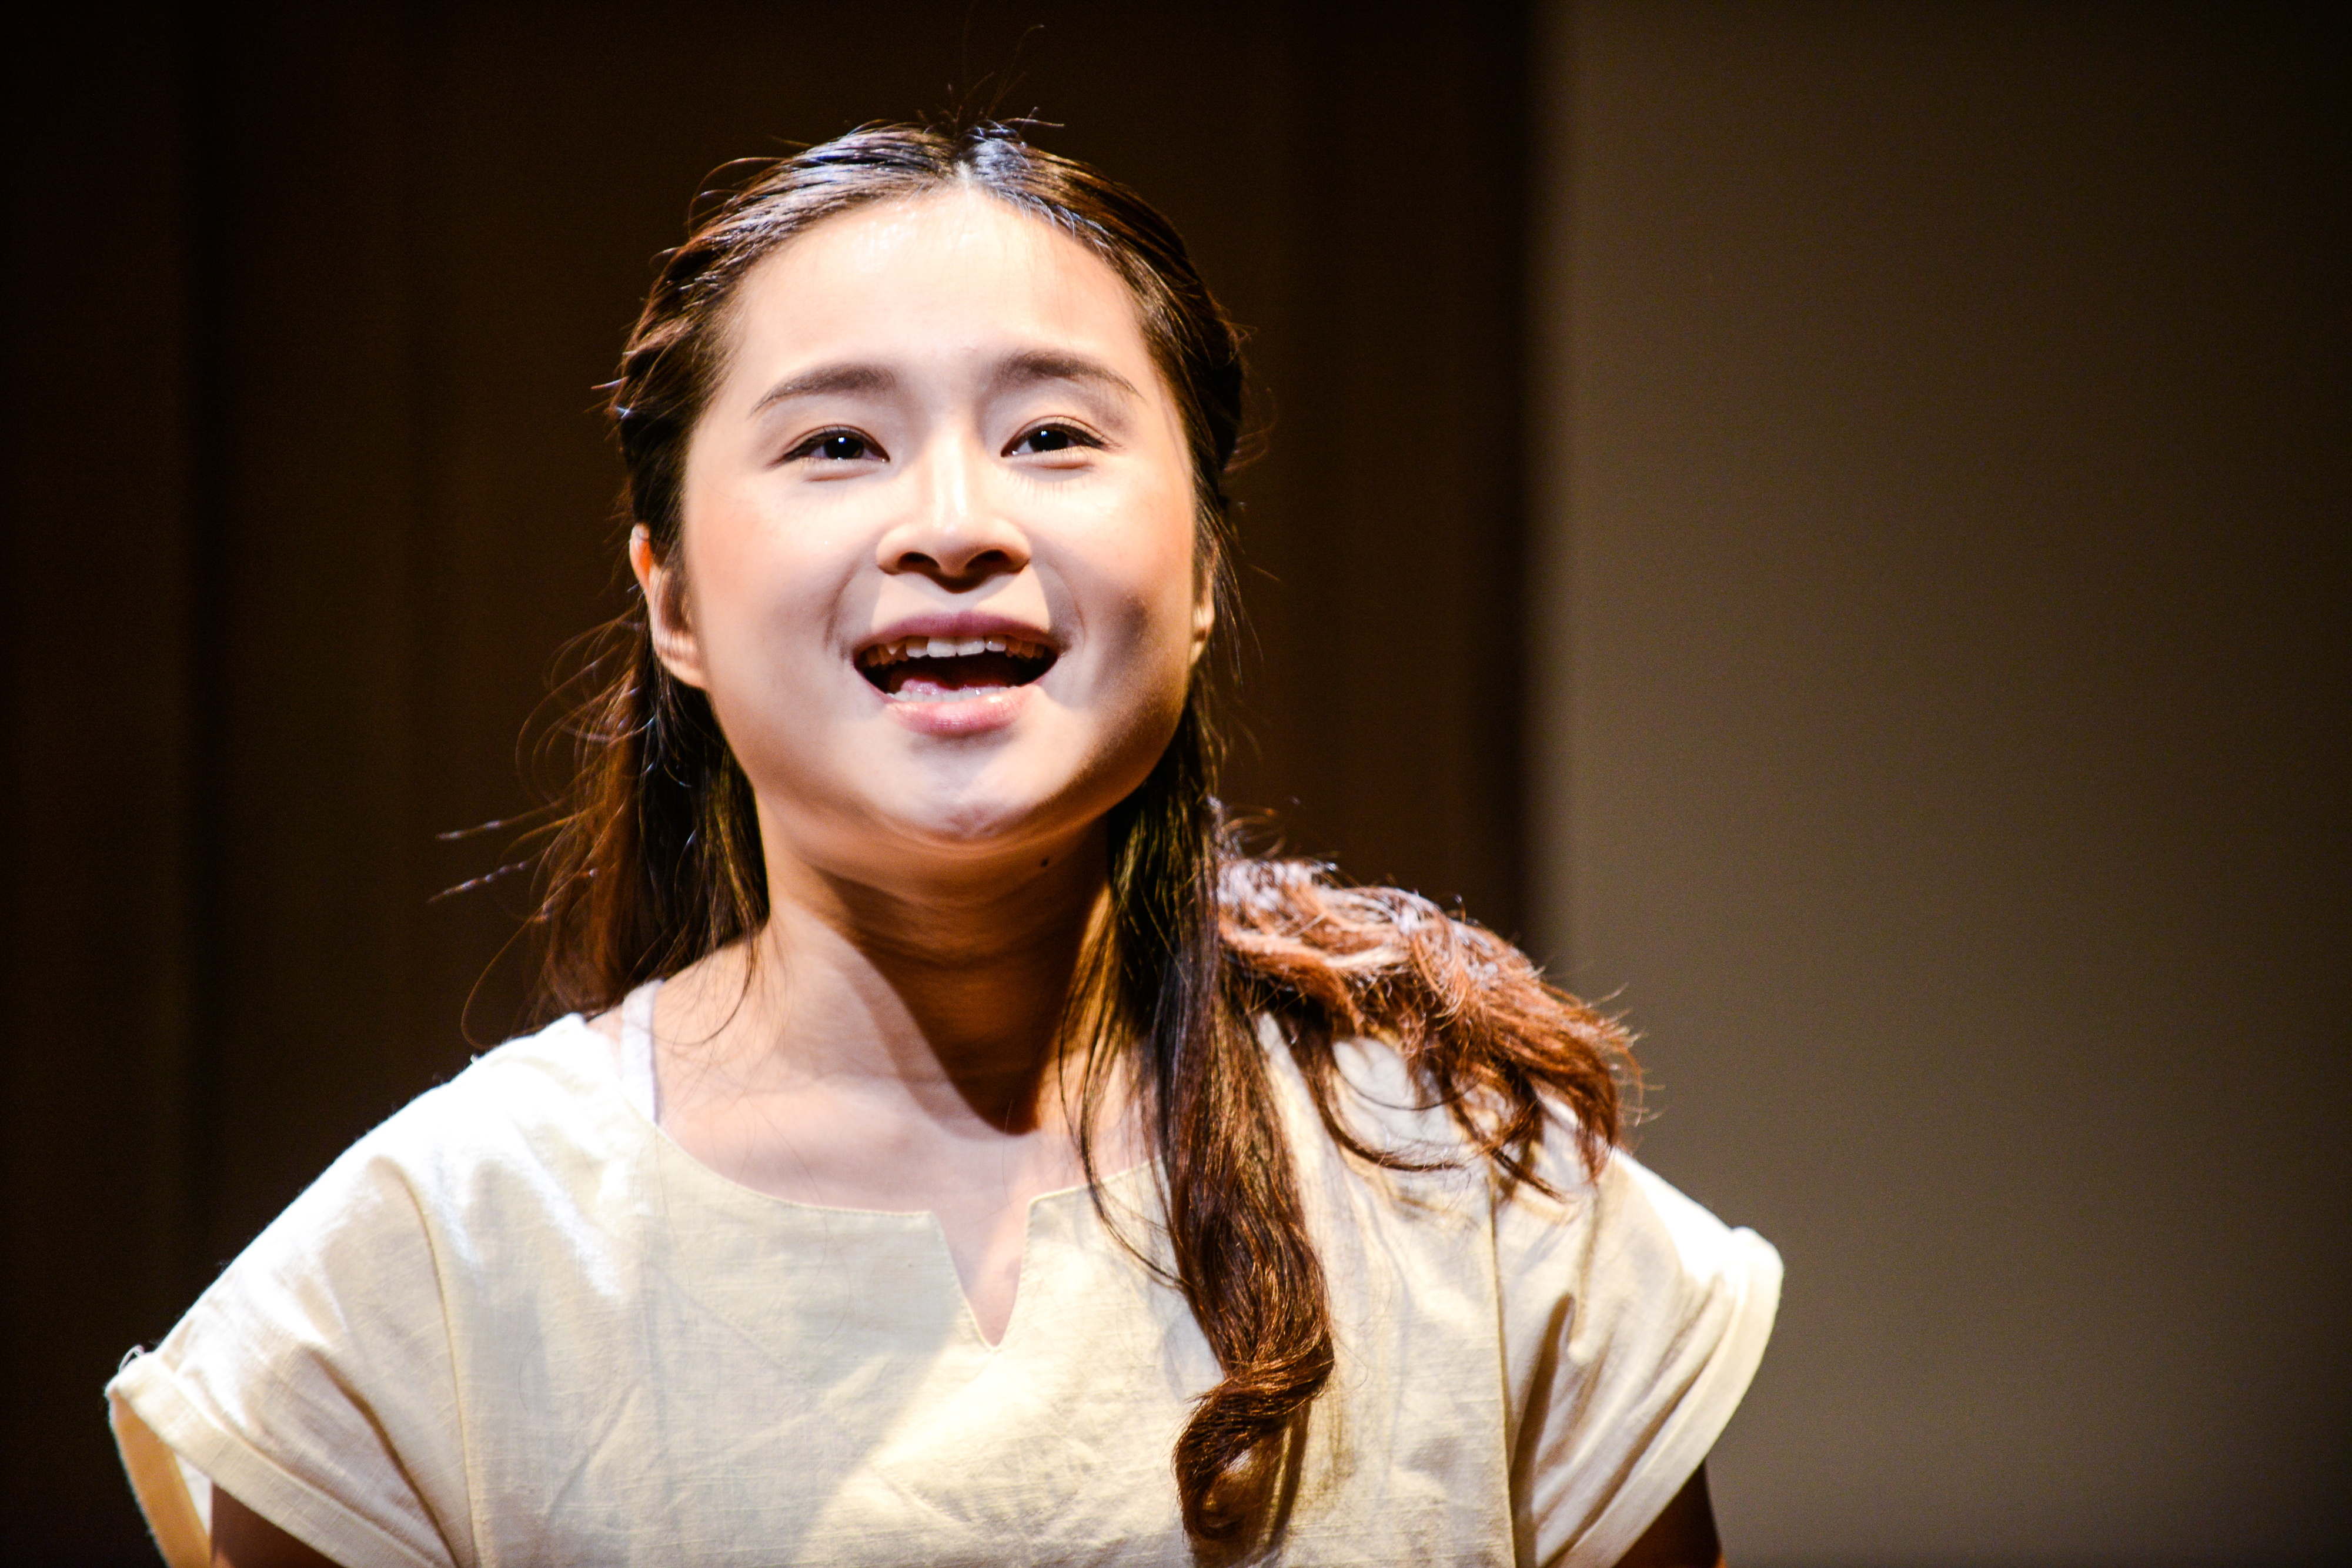 Milk and Honey | Featuring: Lung Jes | Tagged as: Milk and Honey, Show | Photo: Fung Wai Sun |  (Rooftop Productions • Hong Kong Theatre Company)